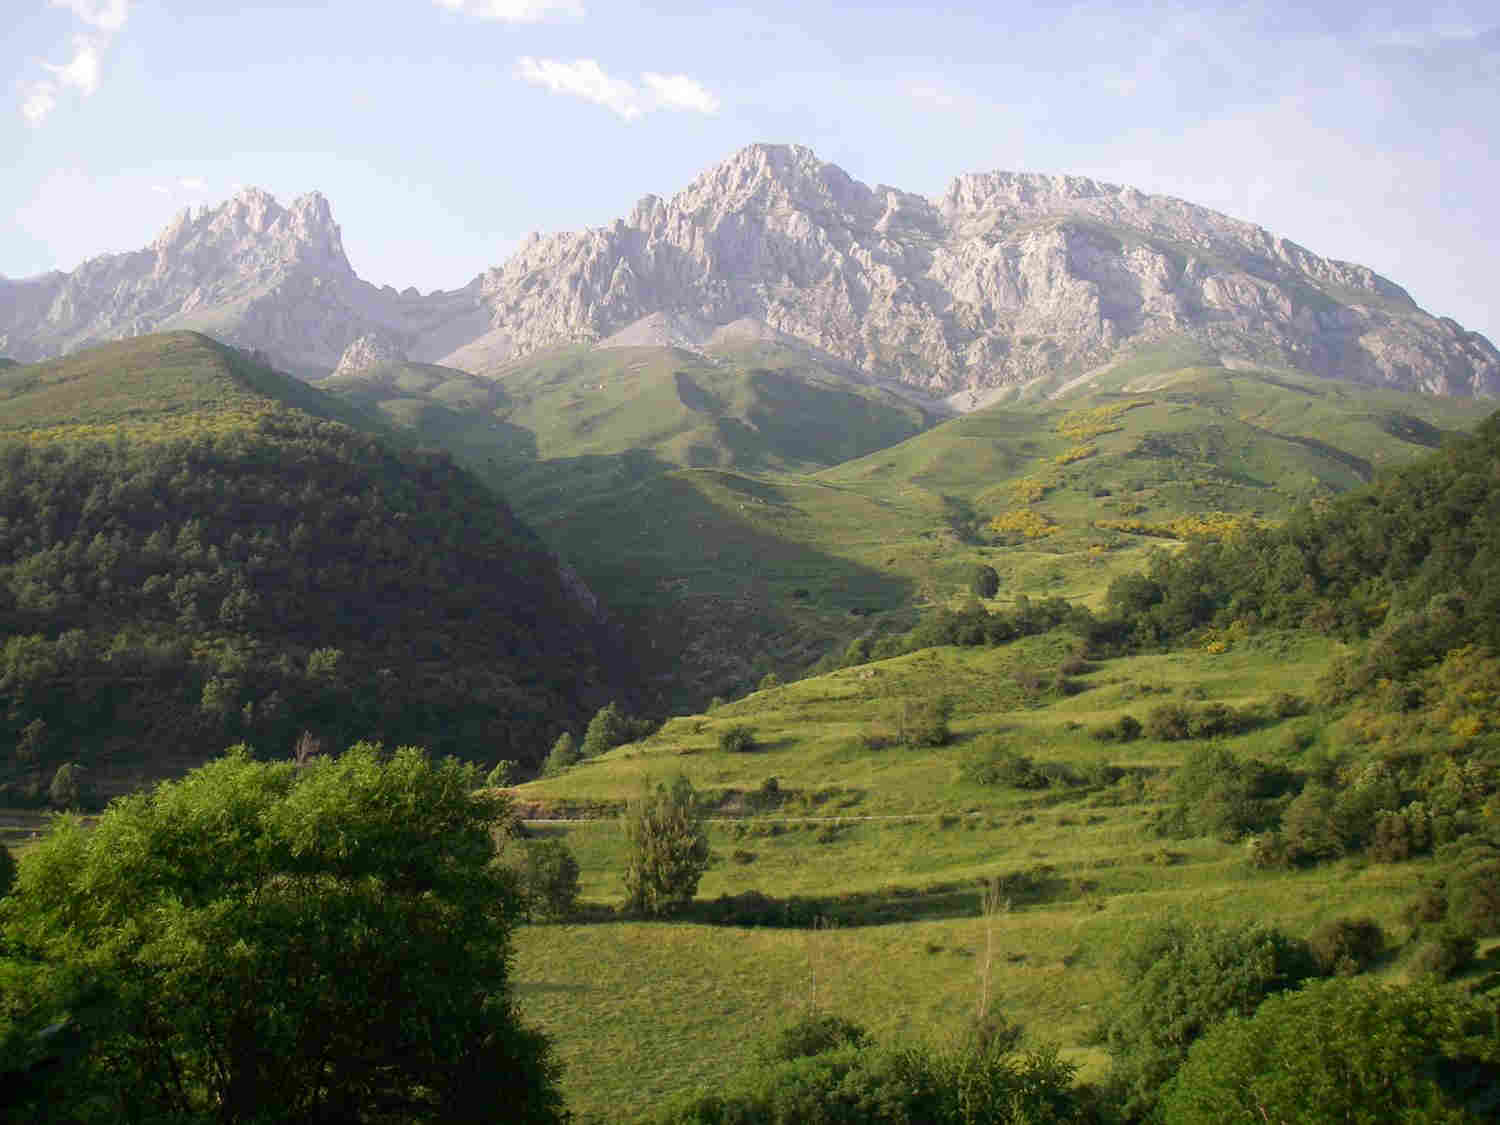 This project will investigate some key ways in which understanding the effect of environmental change on the ecological interactions between, plants, invertebrates, birds and mammals can inform the conservation of alpine heathlands and forest ecosystems. The Picos de Europa National Park is outstanding in terms of its high diversity of species and is also a particularly important Spanish stronghold for two high conservation value species that use alpine heaths and forests - Capercaillie (big rare birds!) and Brown Bear.